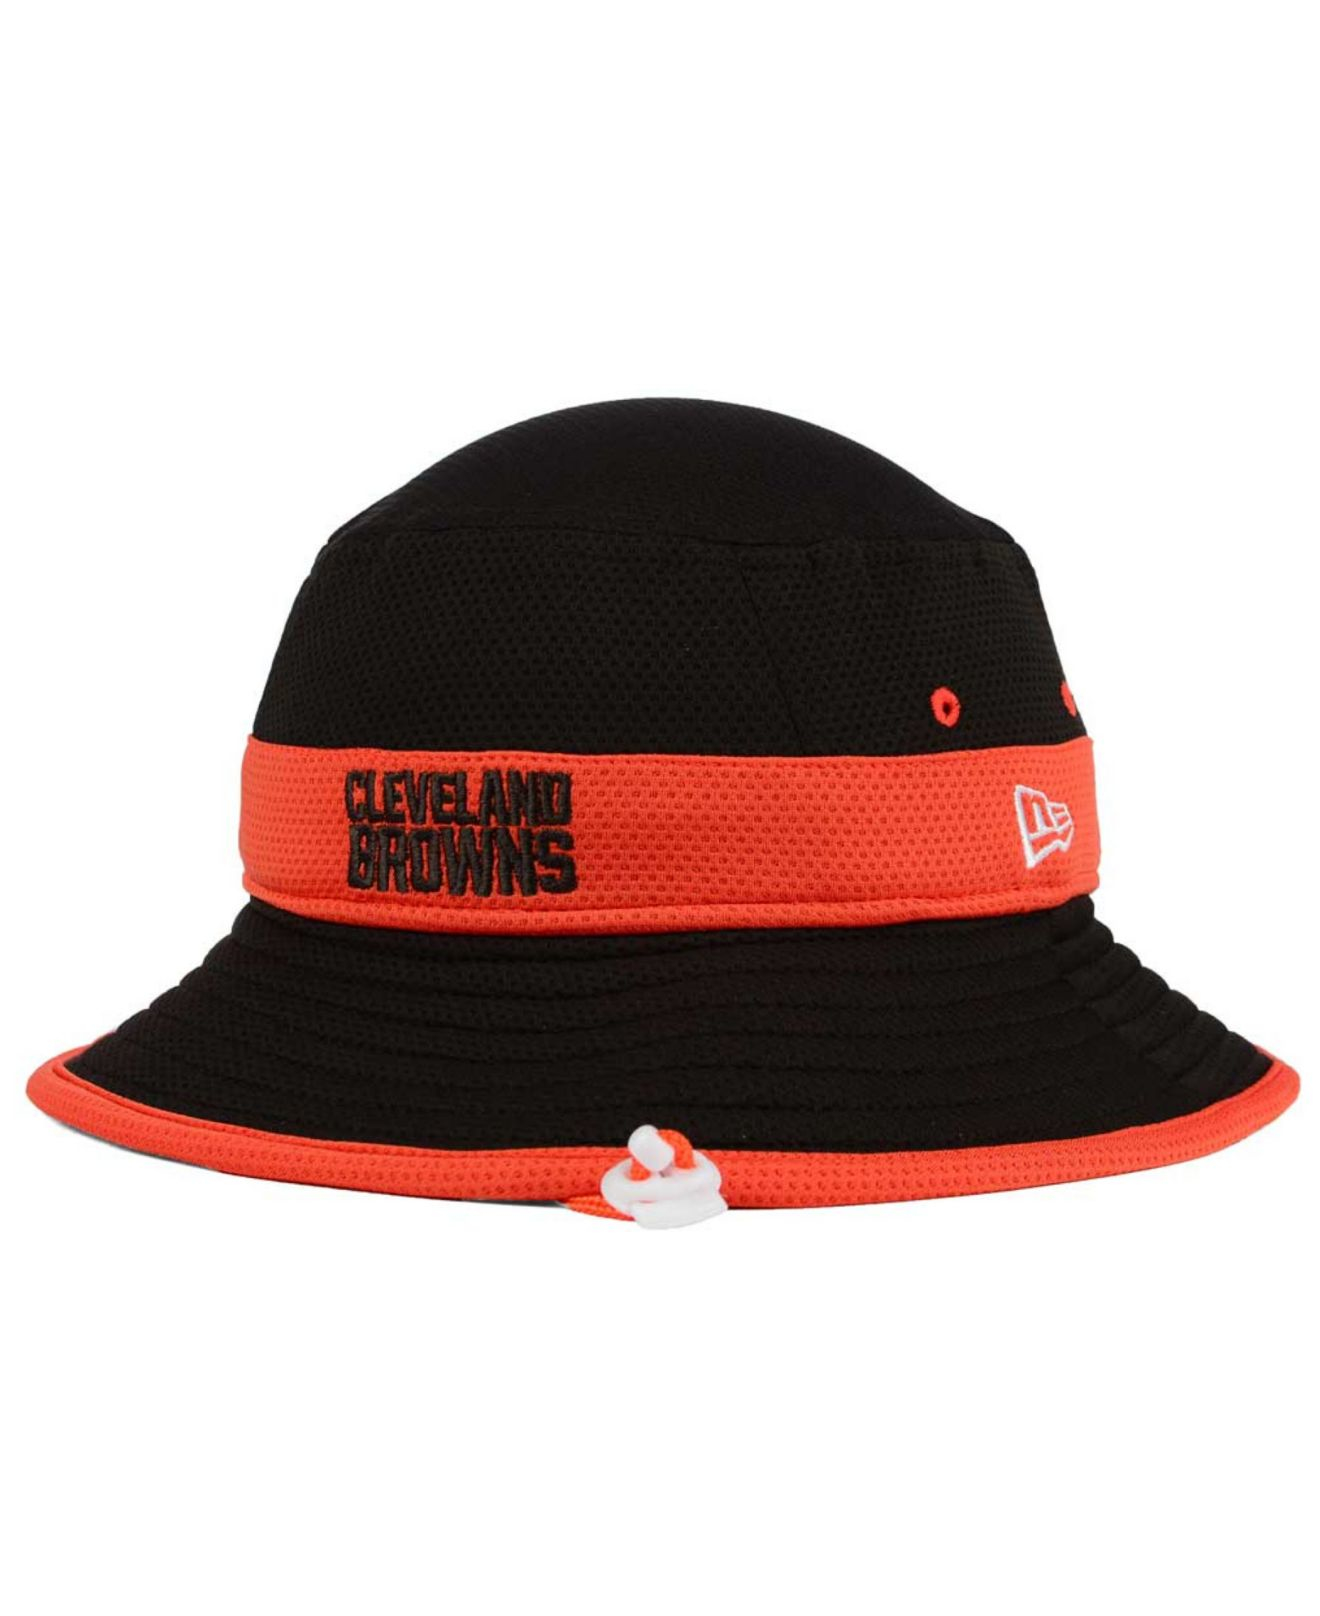 Lyst - KTZ Cleveland Browns Training Camp Reverse Bucket Hat in ... 0831fc6a0